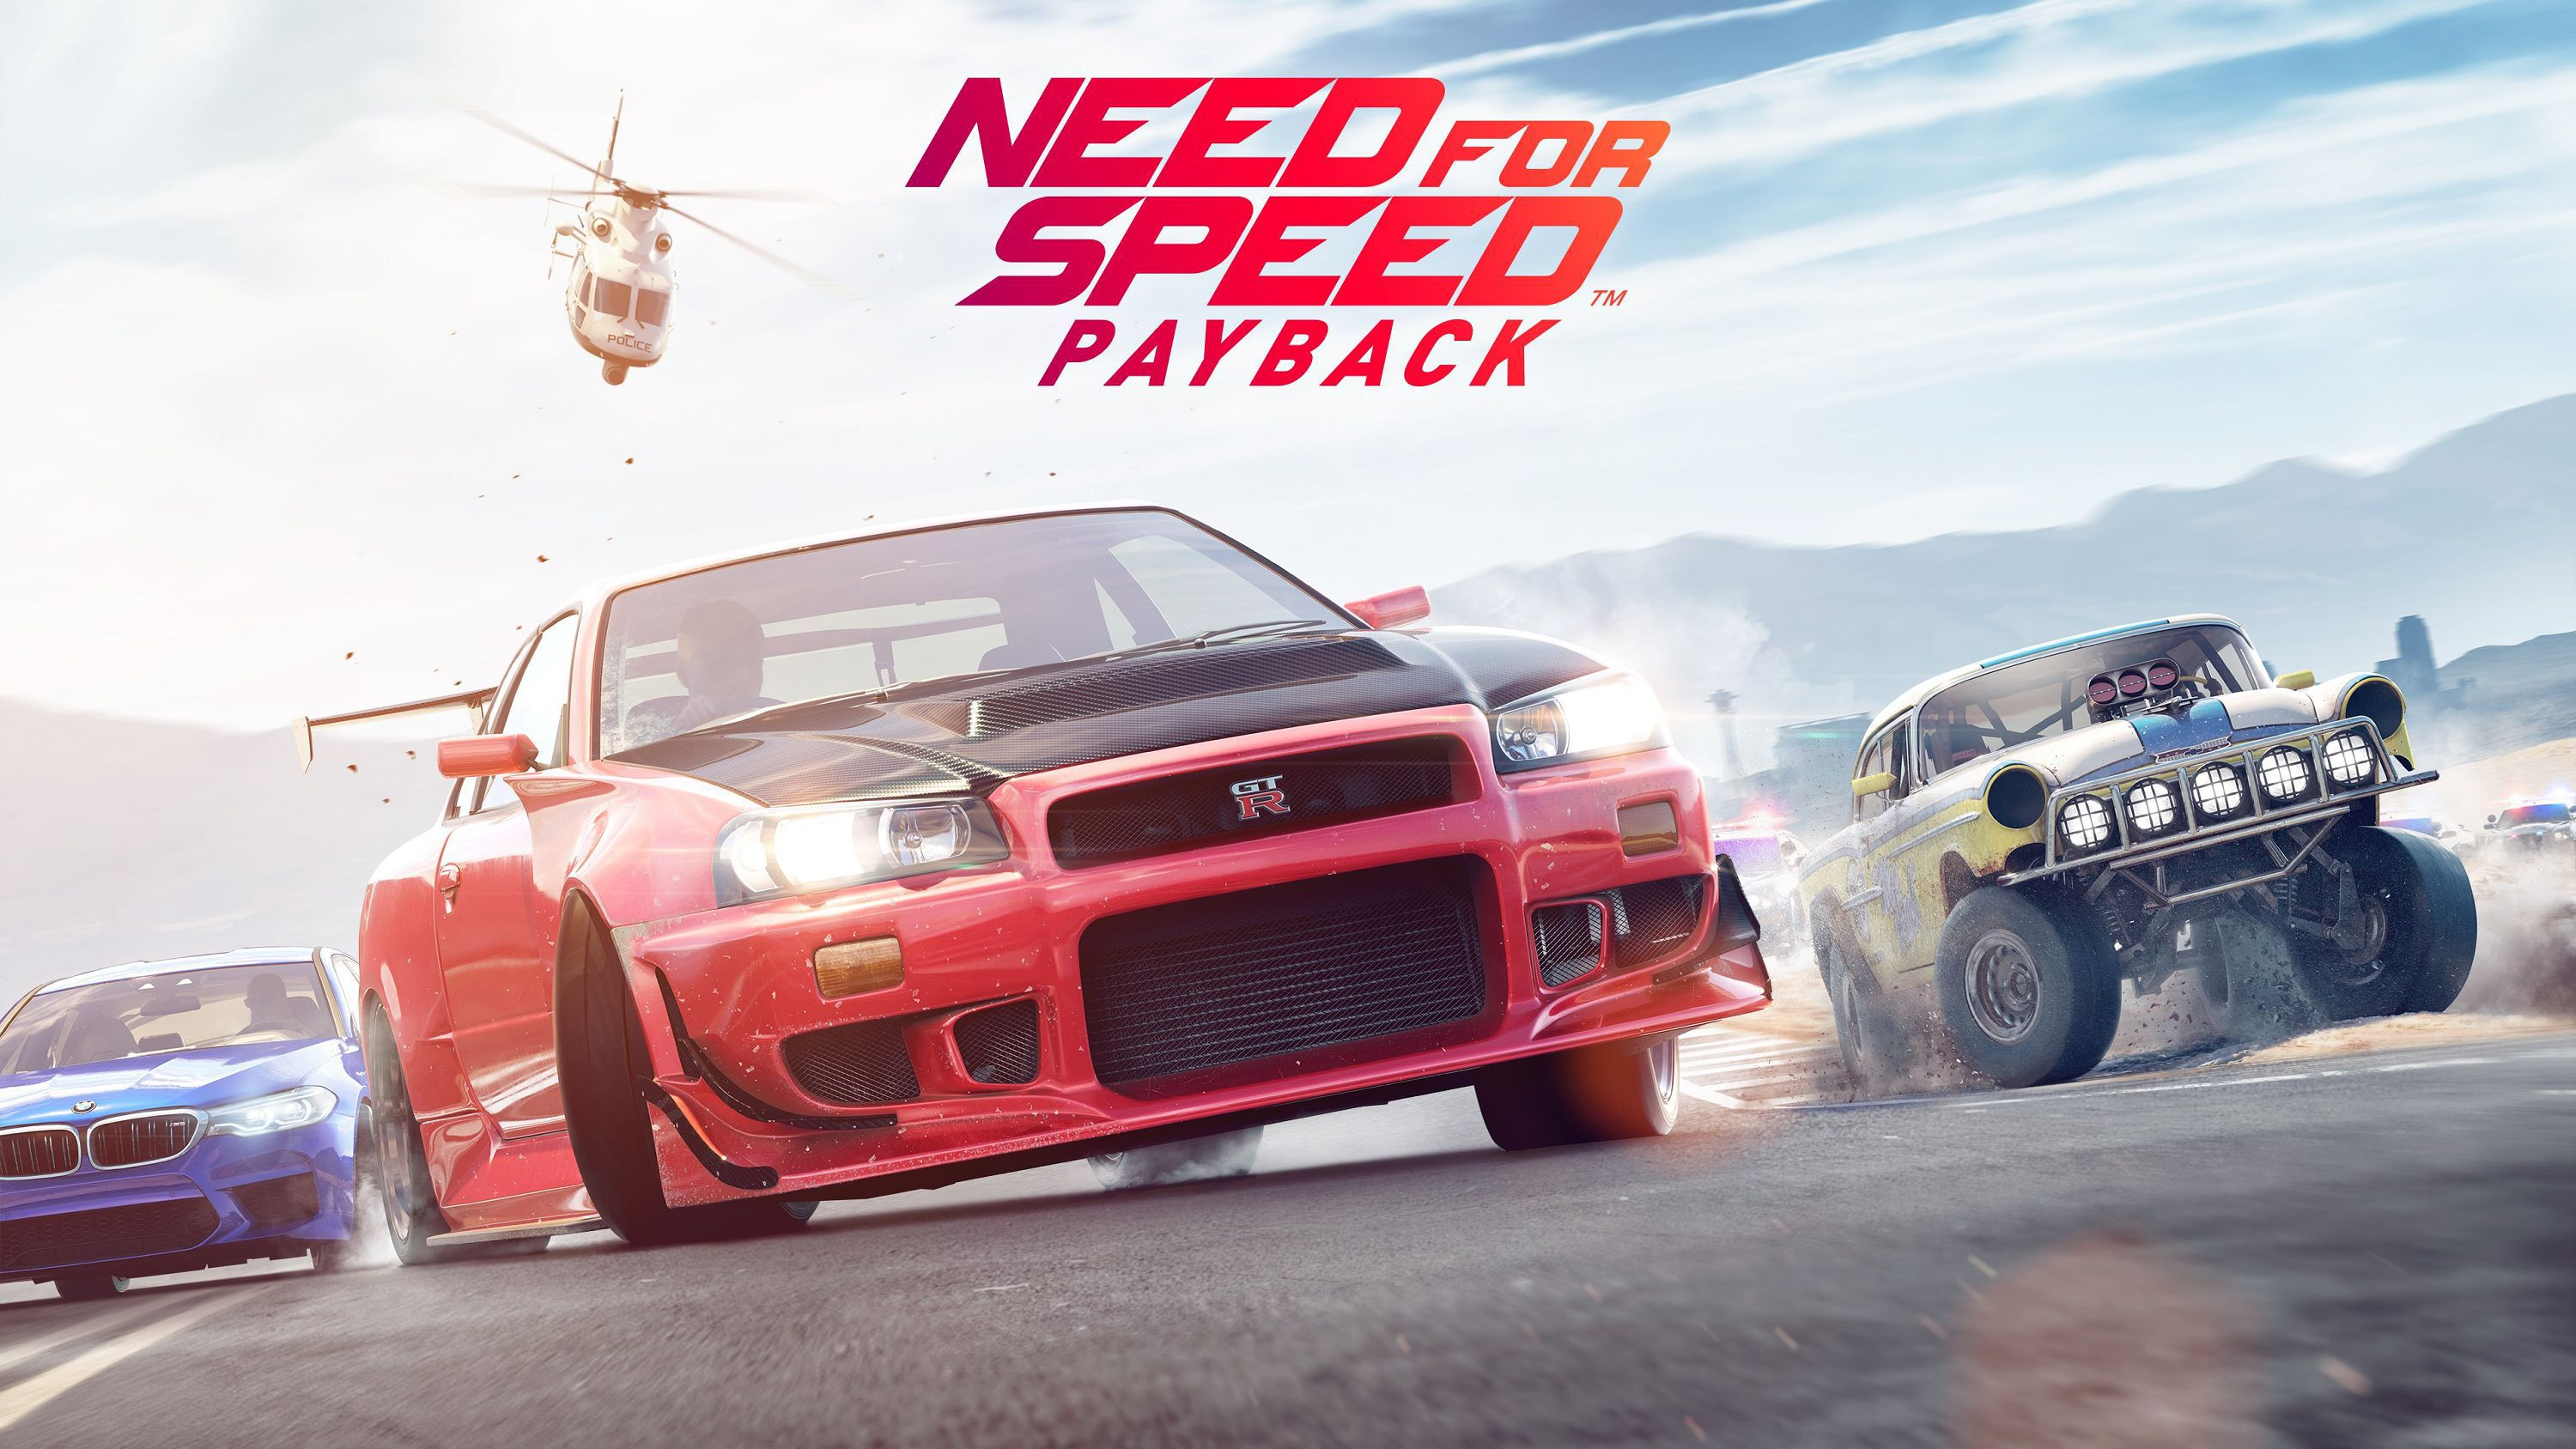 Need For Speed Payback Computer Wallpaper